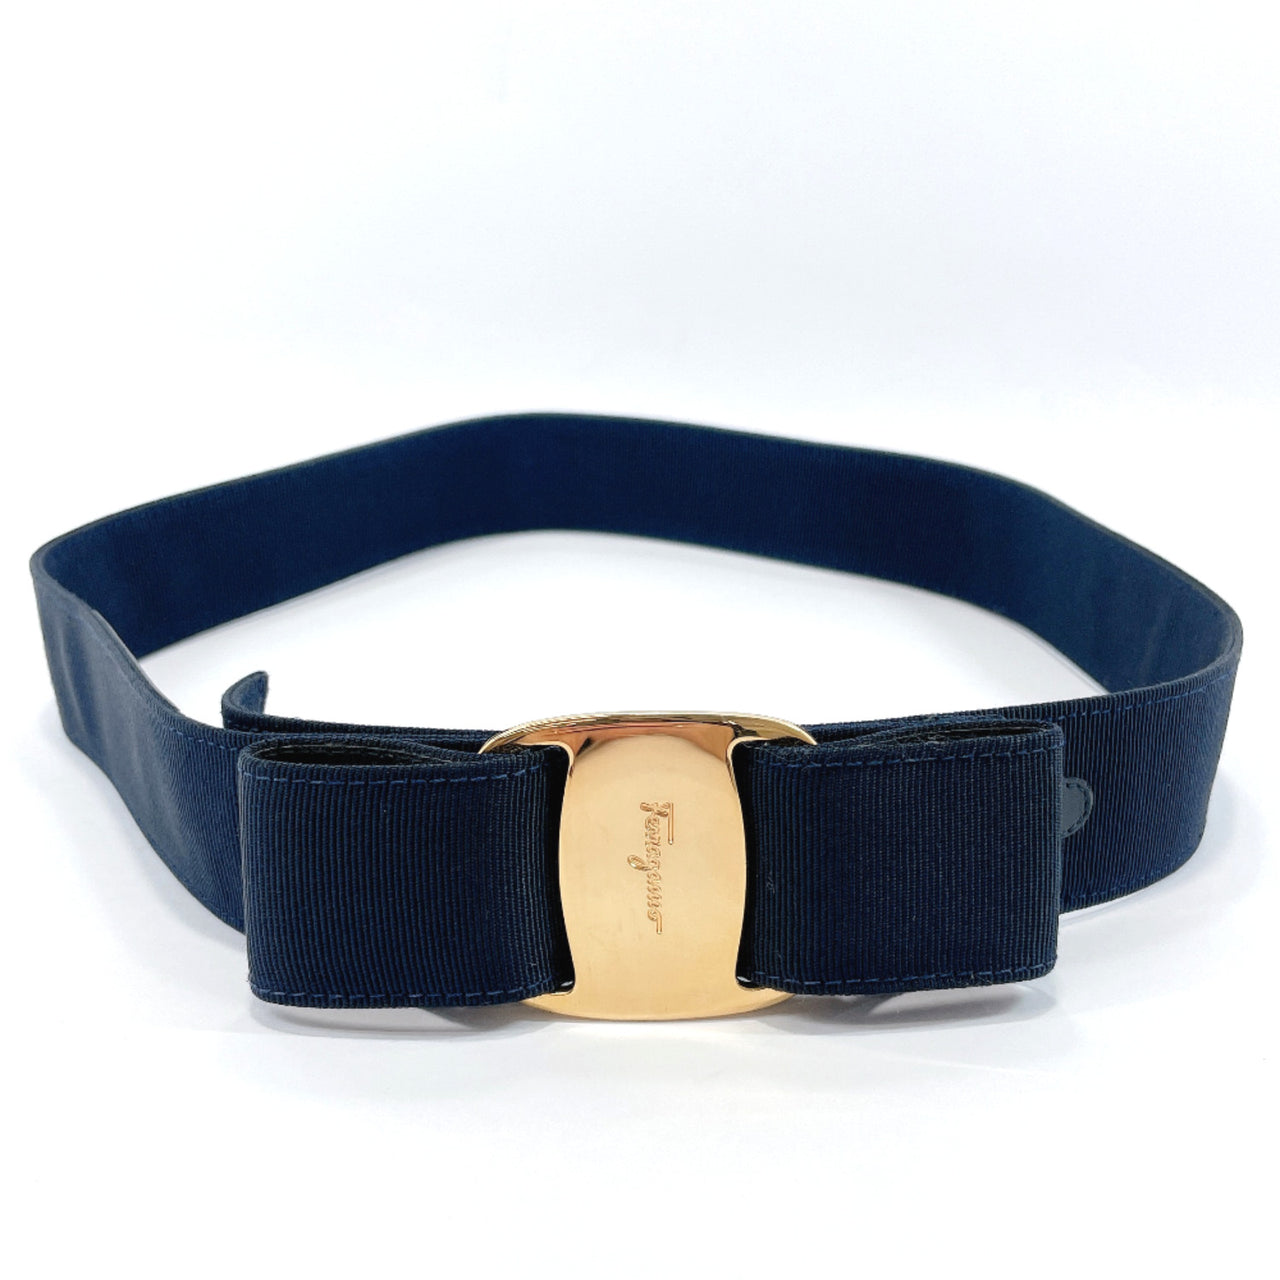 Salvatore Ferragamo belt Vala Rayon/cotton Navy gold Women Used